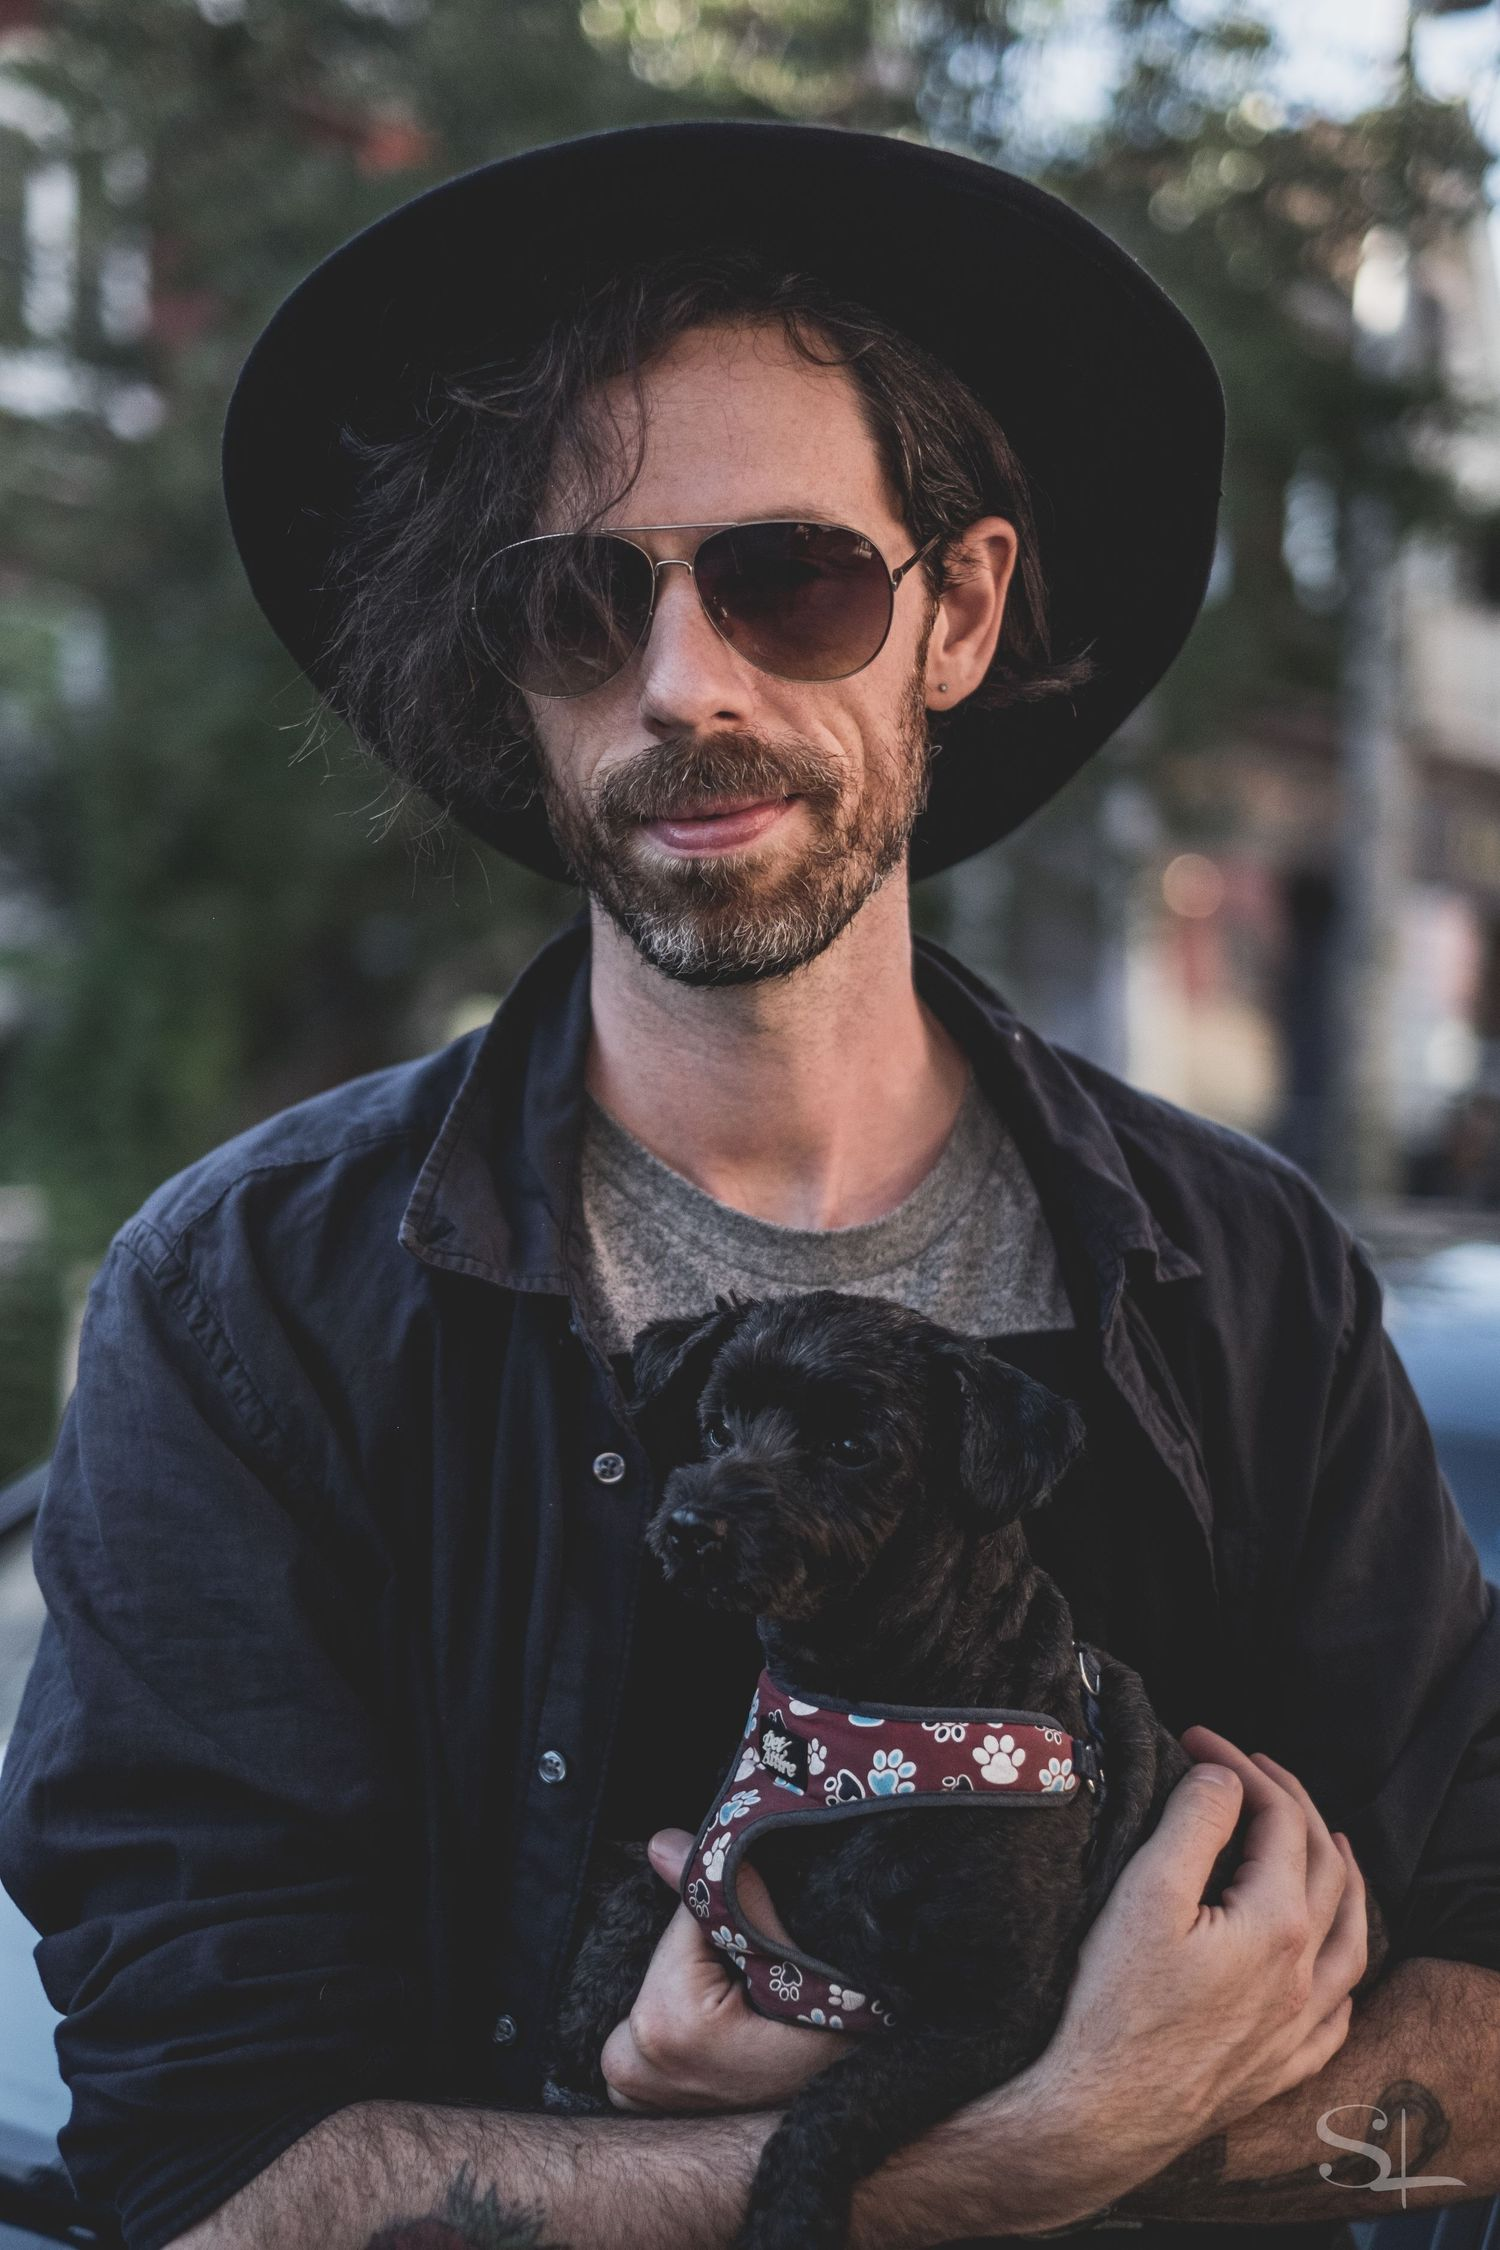 a man with a wide brim hat, dark hair and sunglasses holding a black puppy